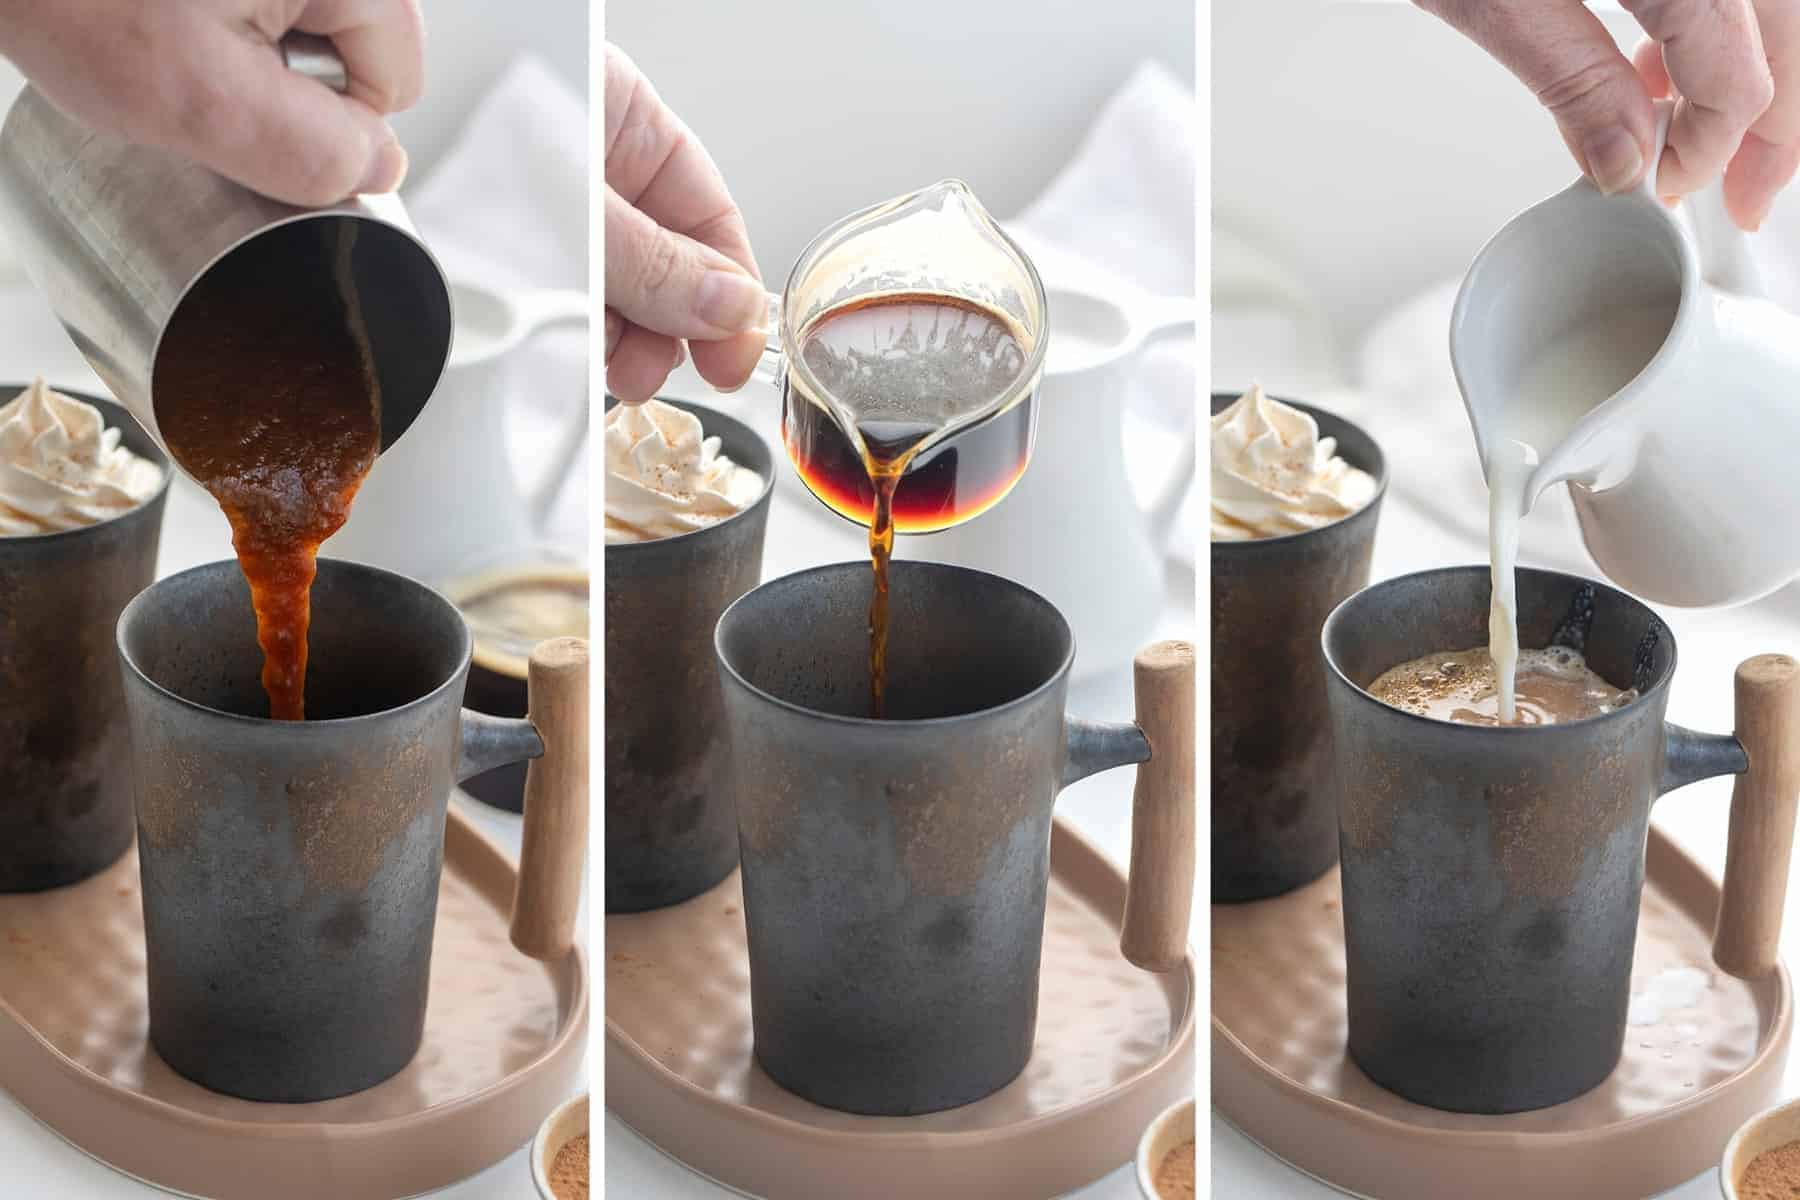 Process Steps for How to Make a Pumpkin Spice Latte